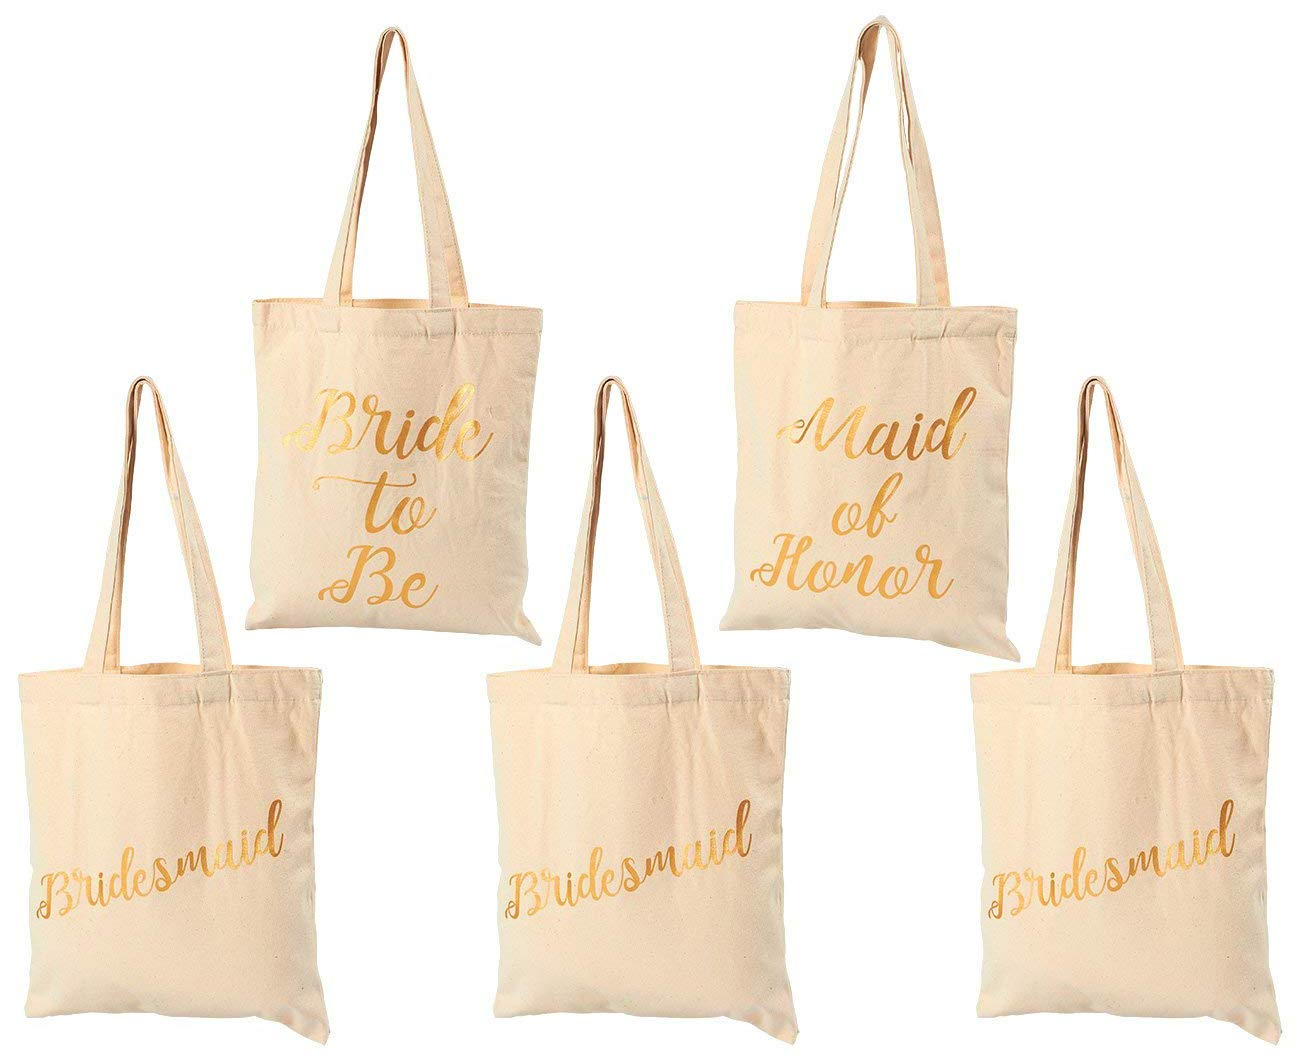 Bridal Shower Canvas Tote Bag - 5-Pack Reusable Shopping Bags for Wedding Favors, Bachelorette Party Gifts, and Bridal Shower Accessories 13.5 x 12 Inches